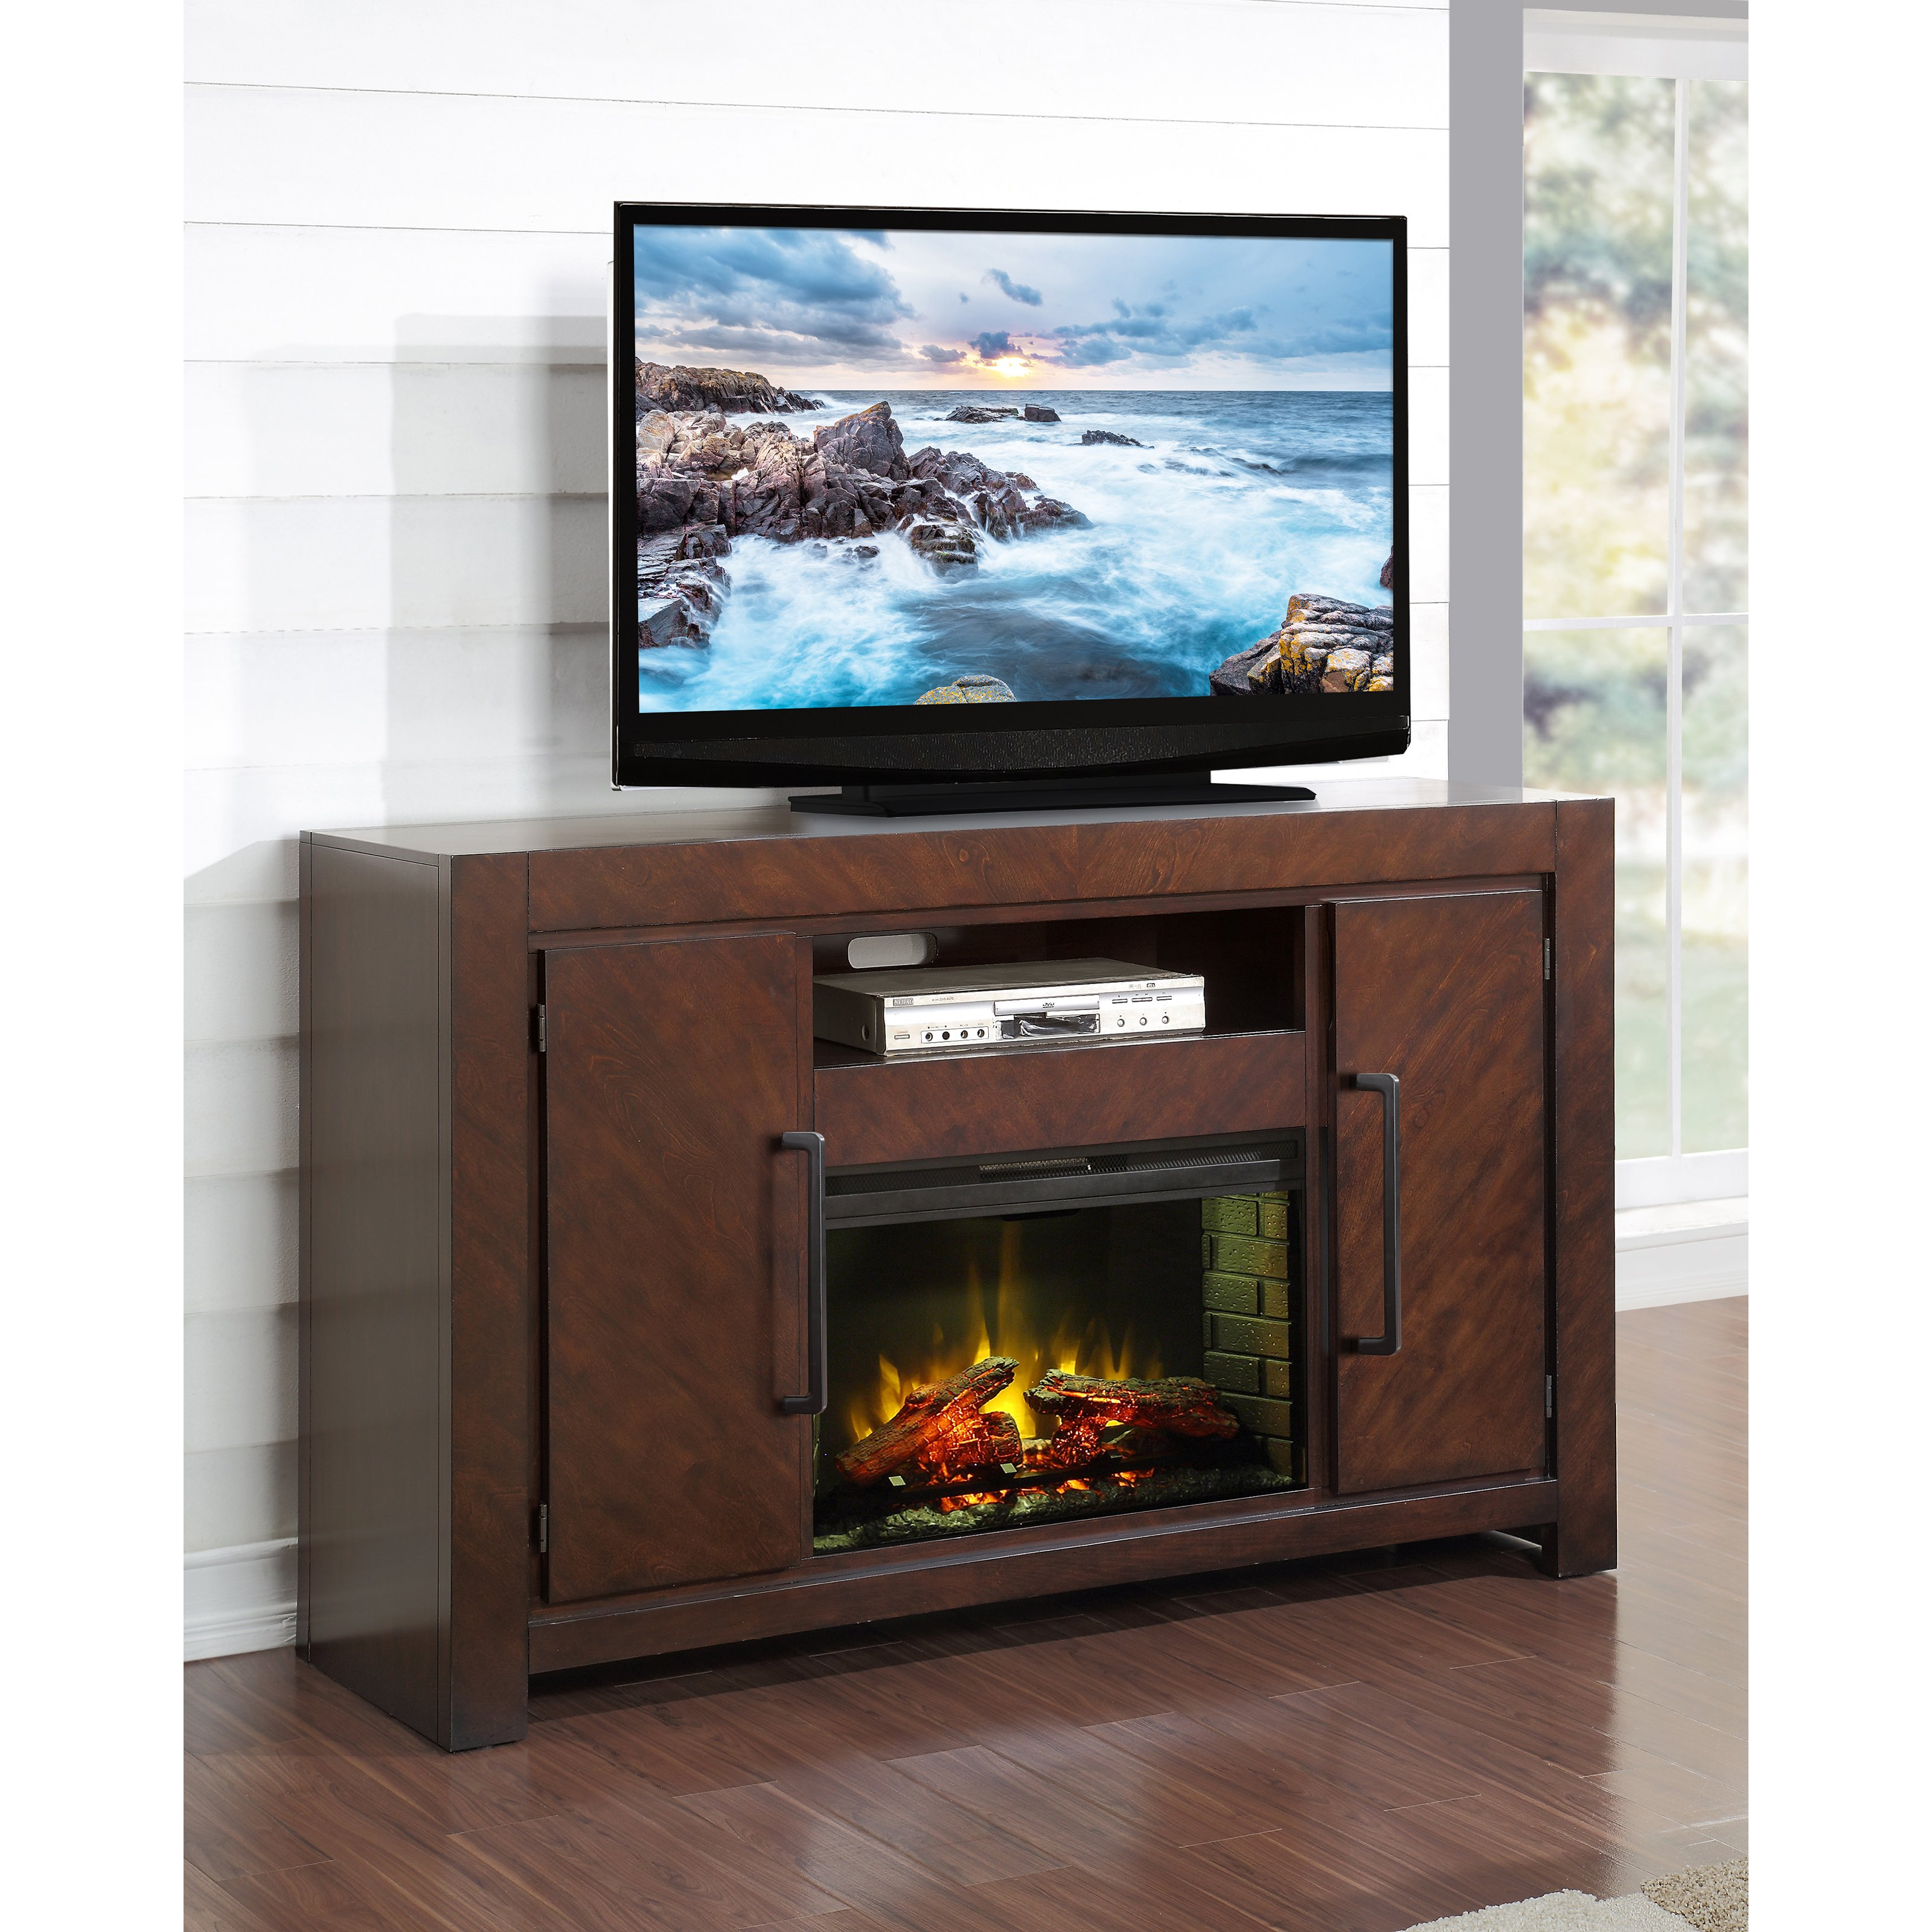 Legends Furniture City Lights 62 in. Electric Media Fireplace